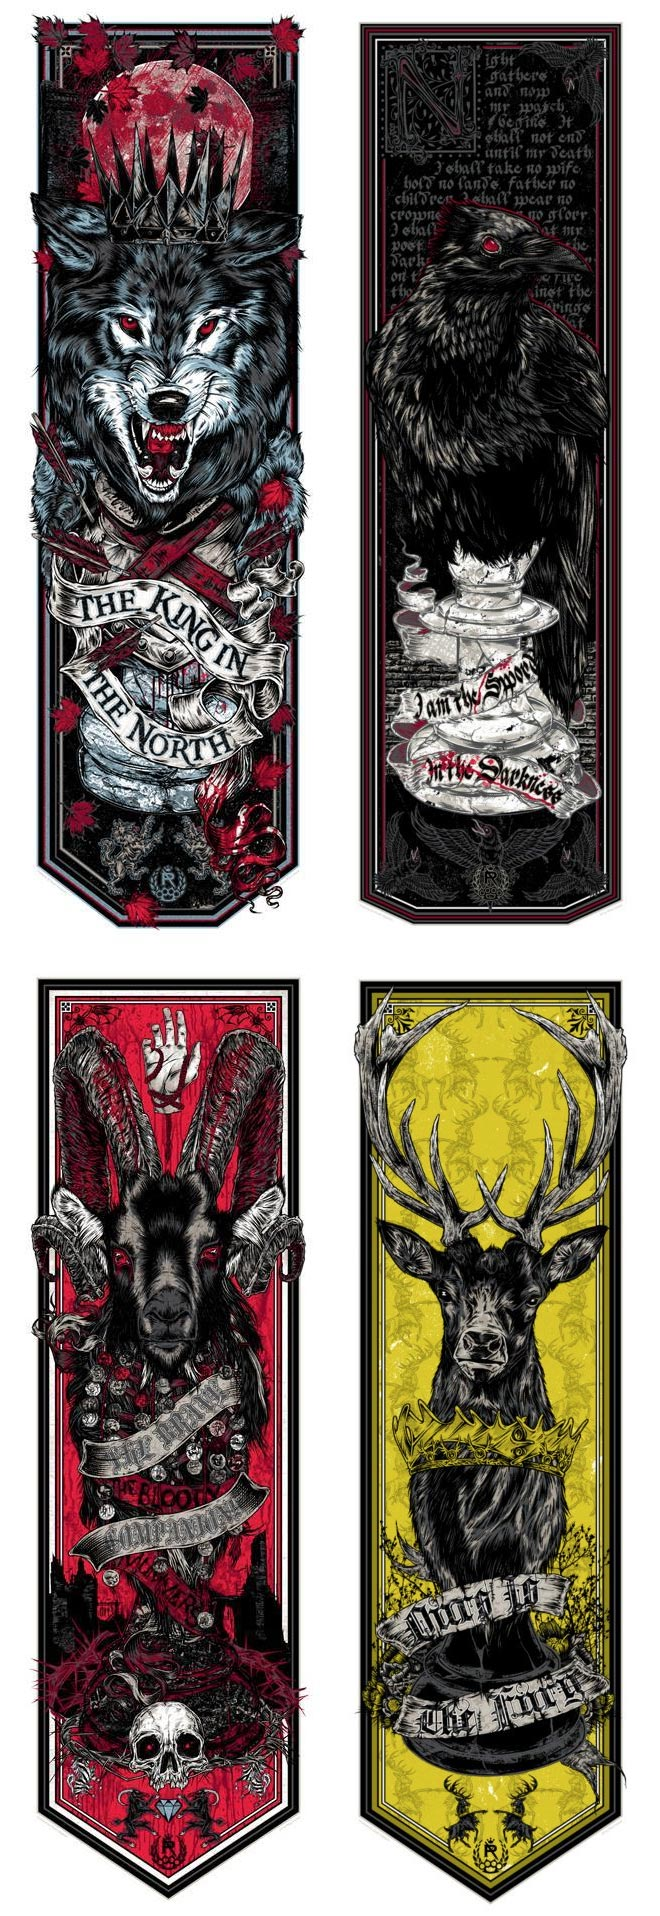 Game of Thrones Banners by Rhys Cooper